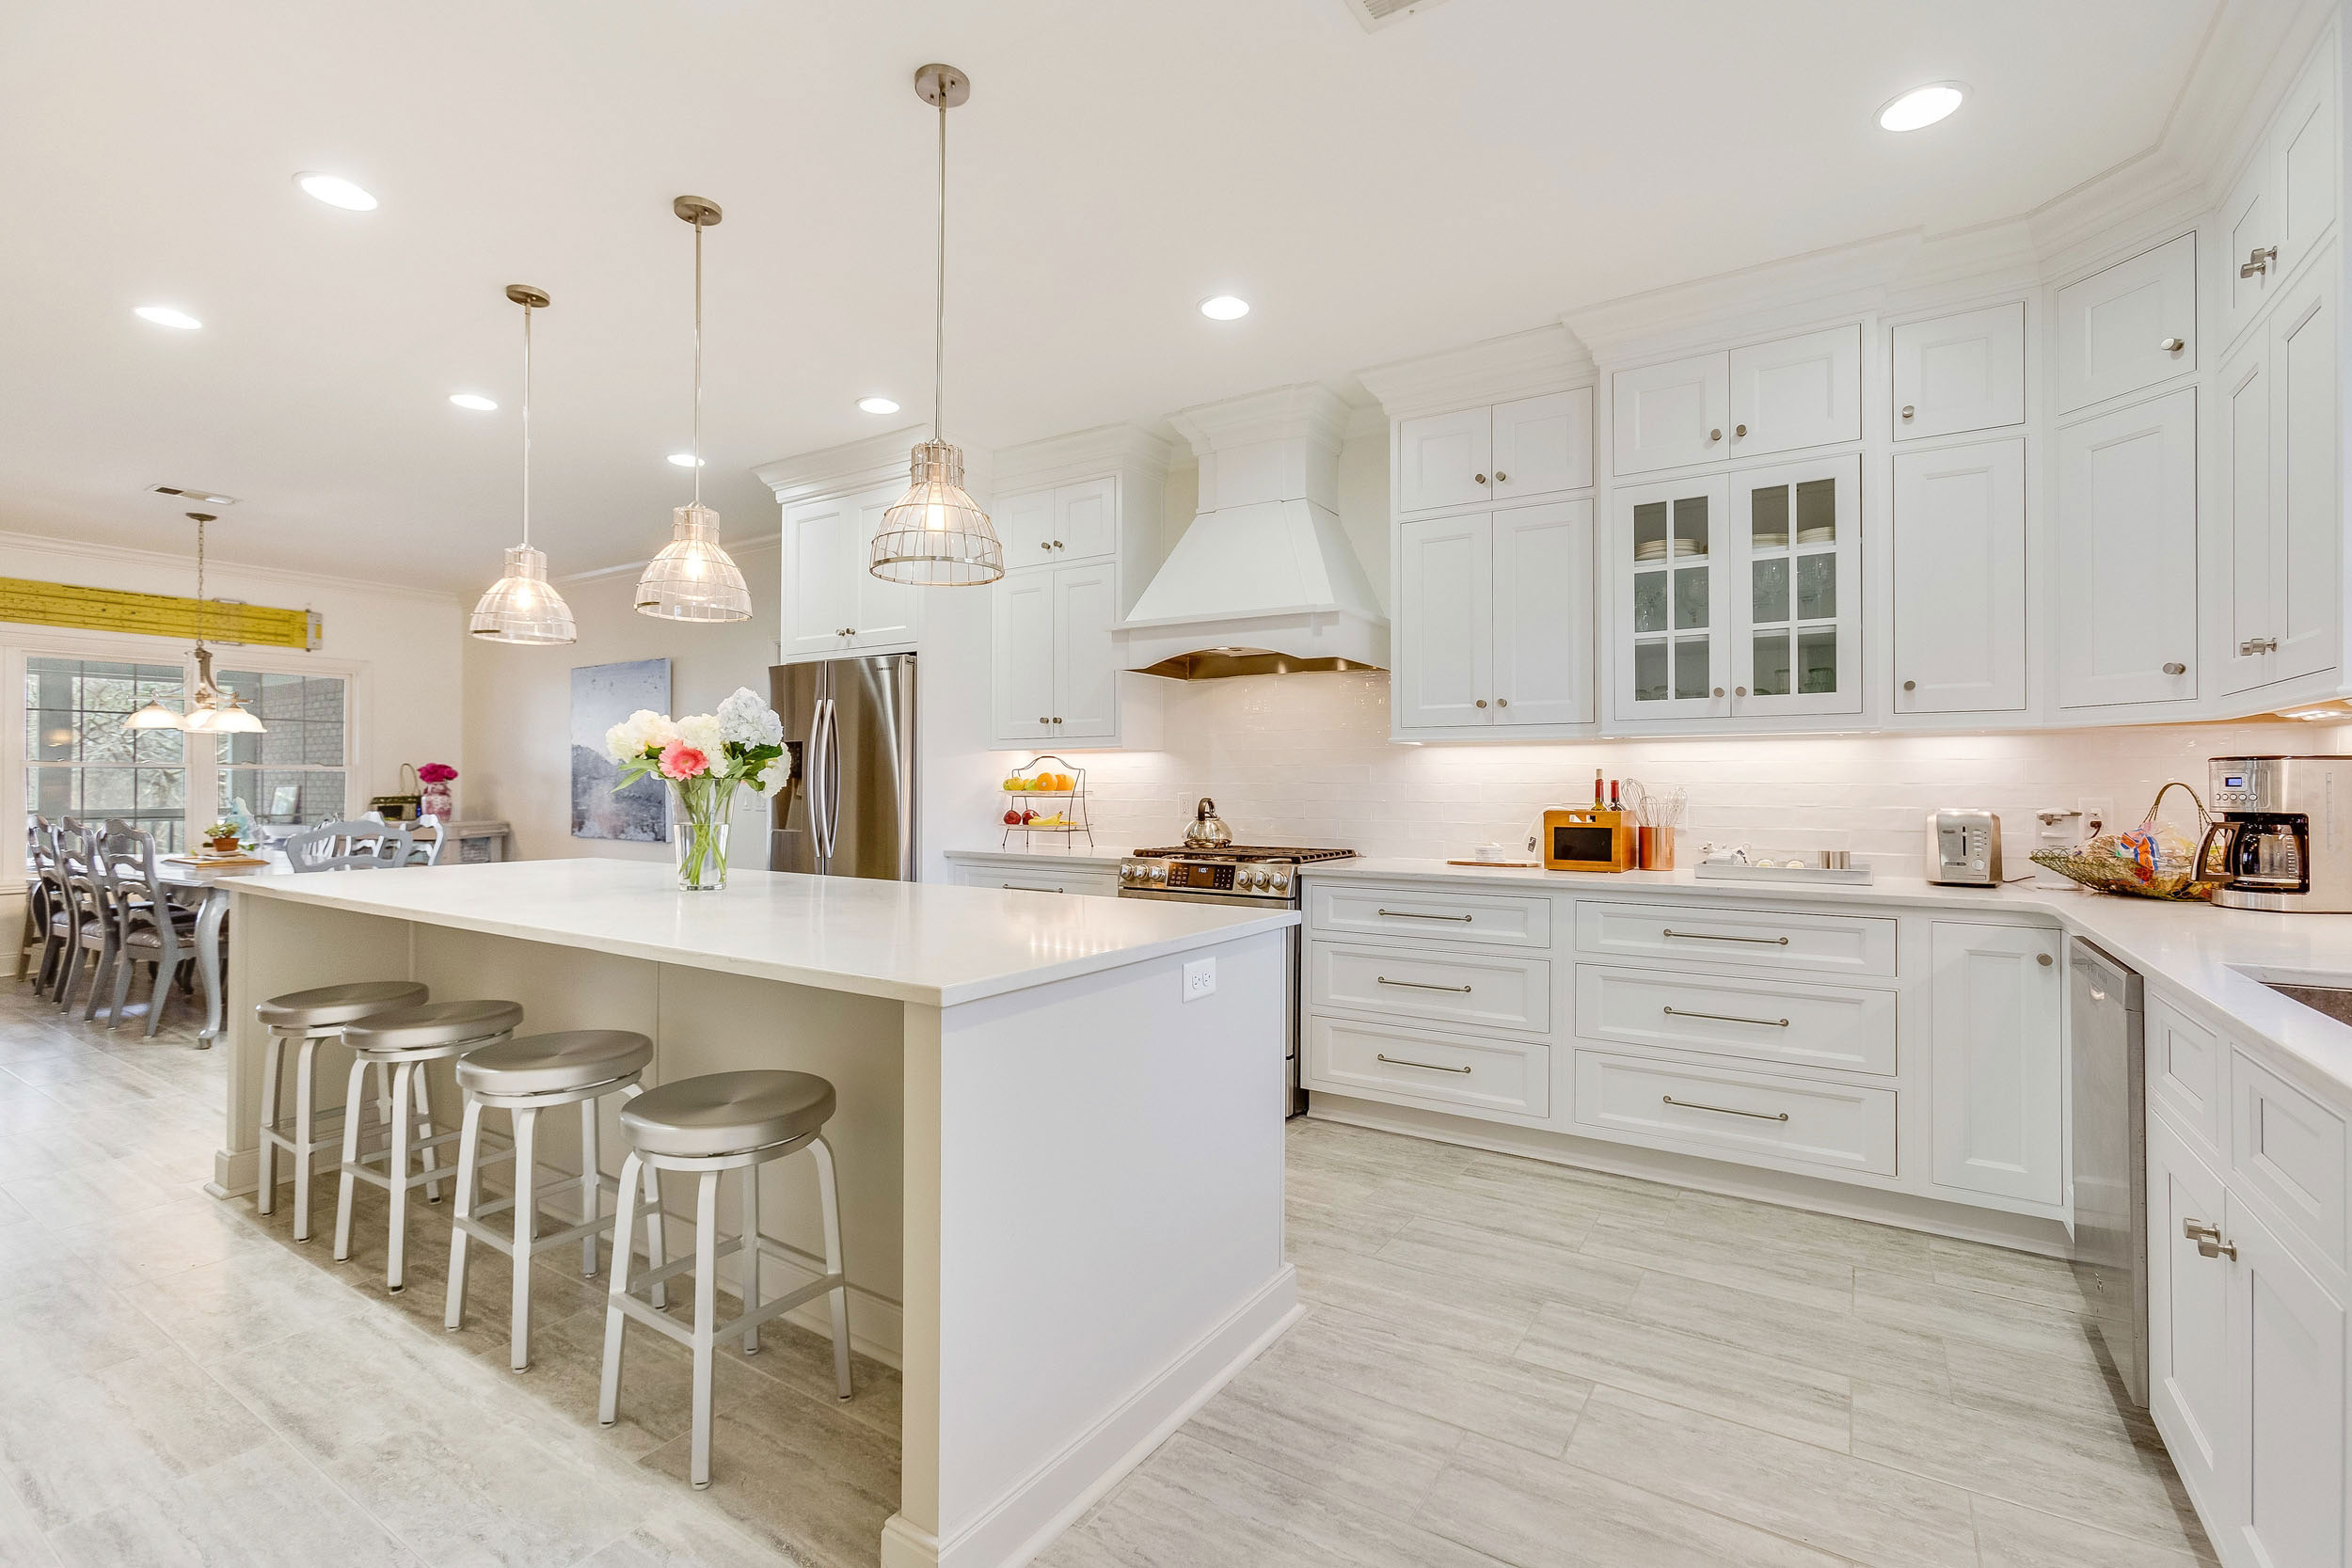 How Long Does a Typical Kitchen Remodel Take?